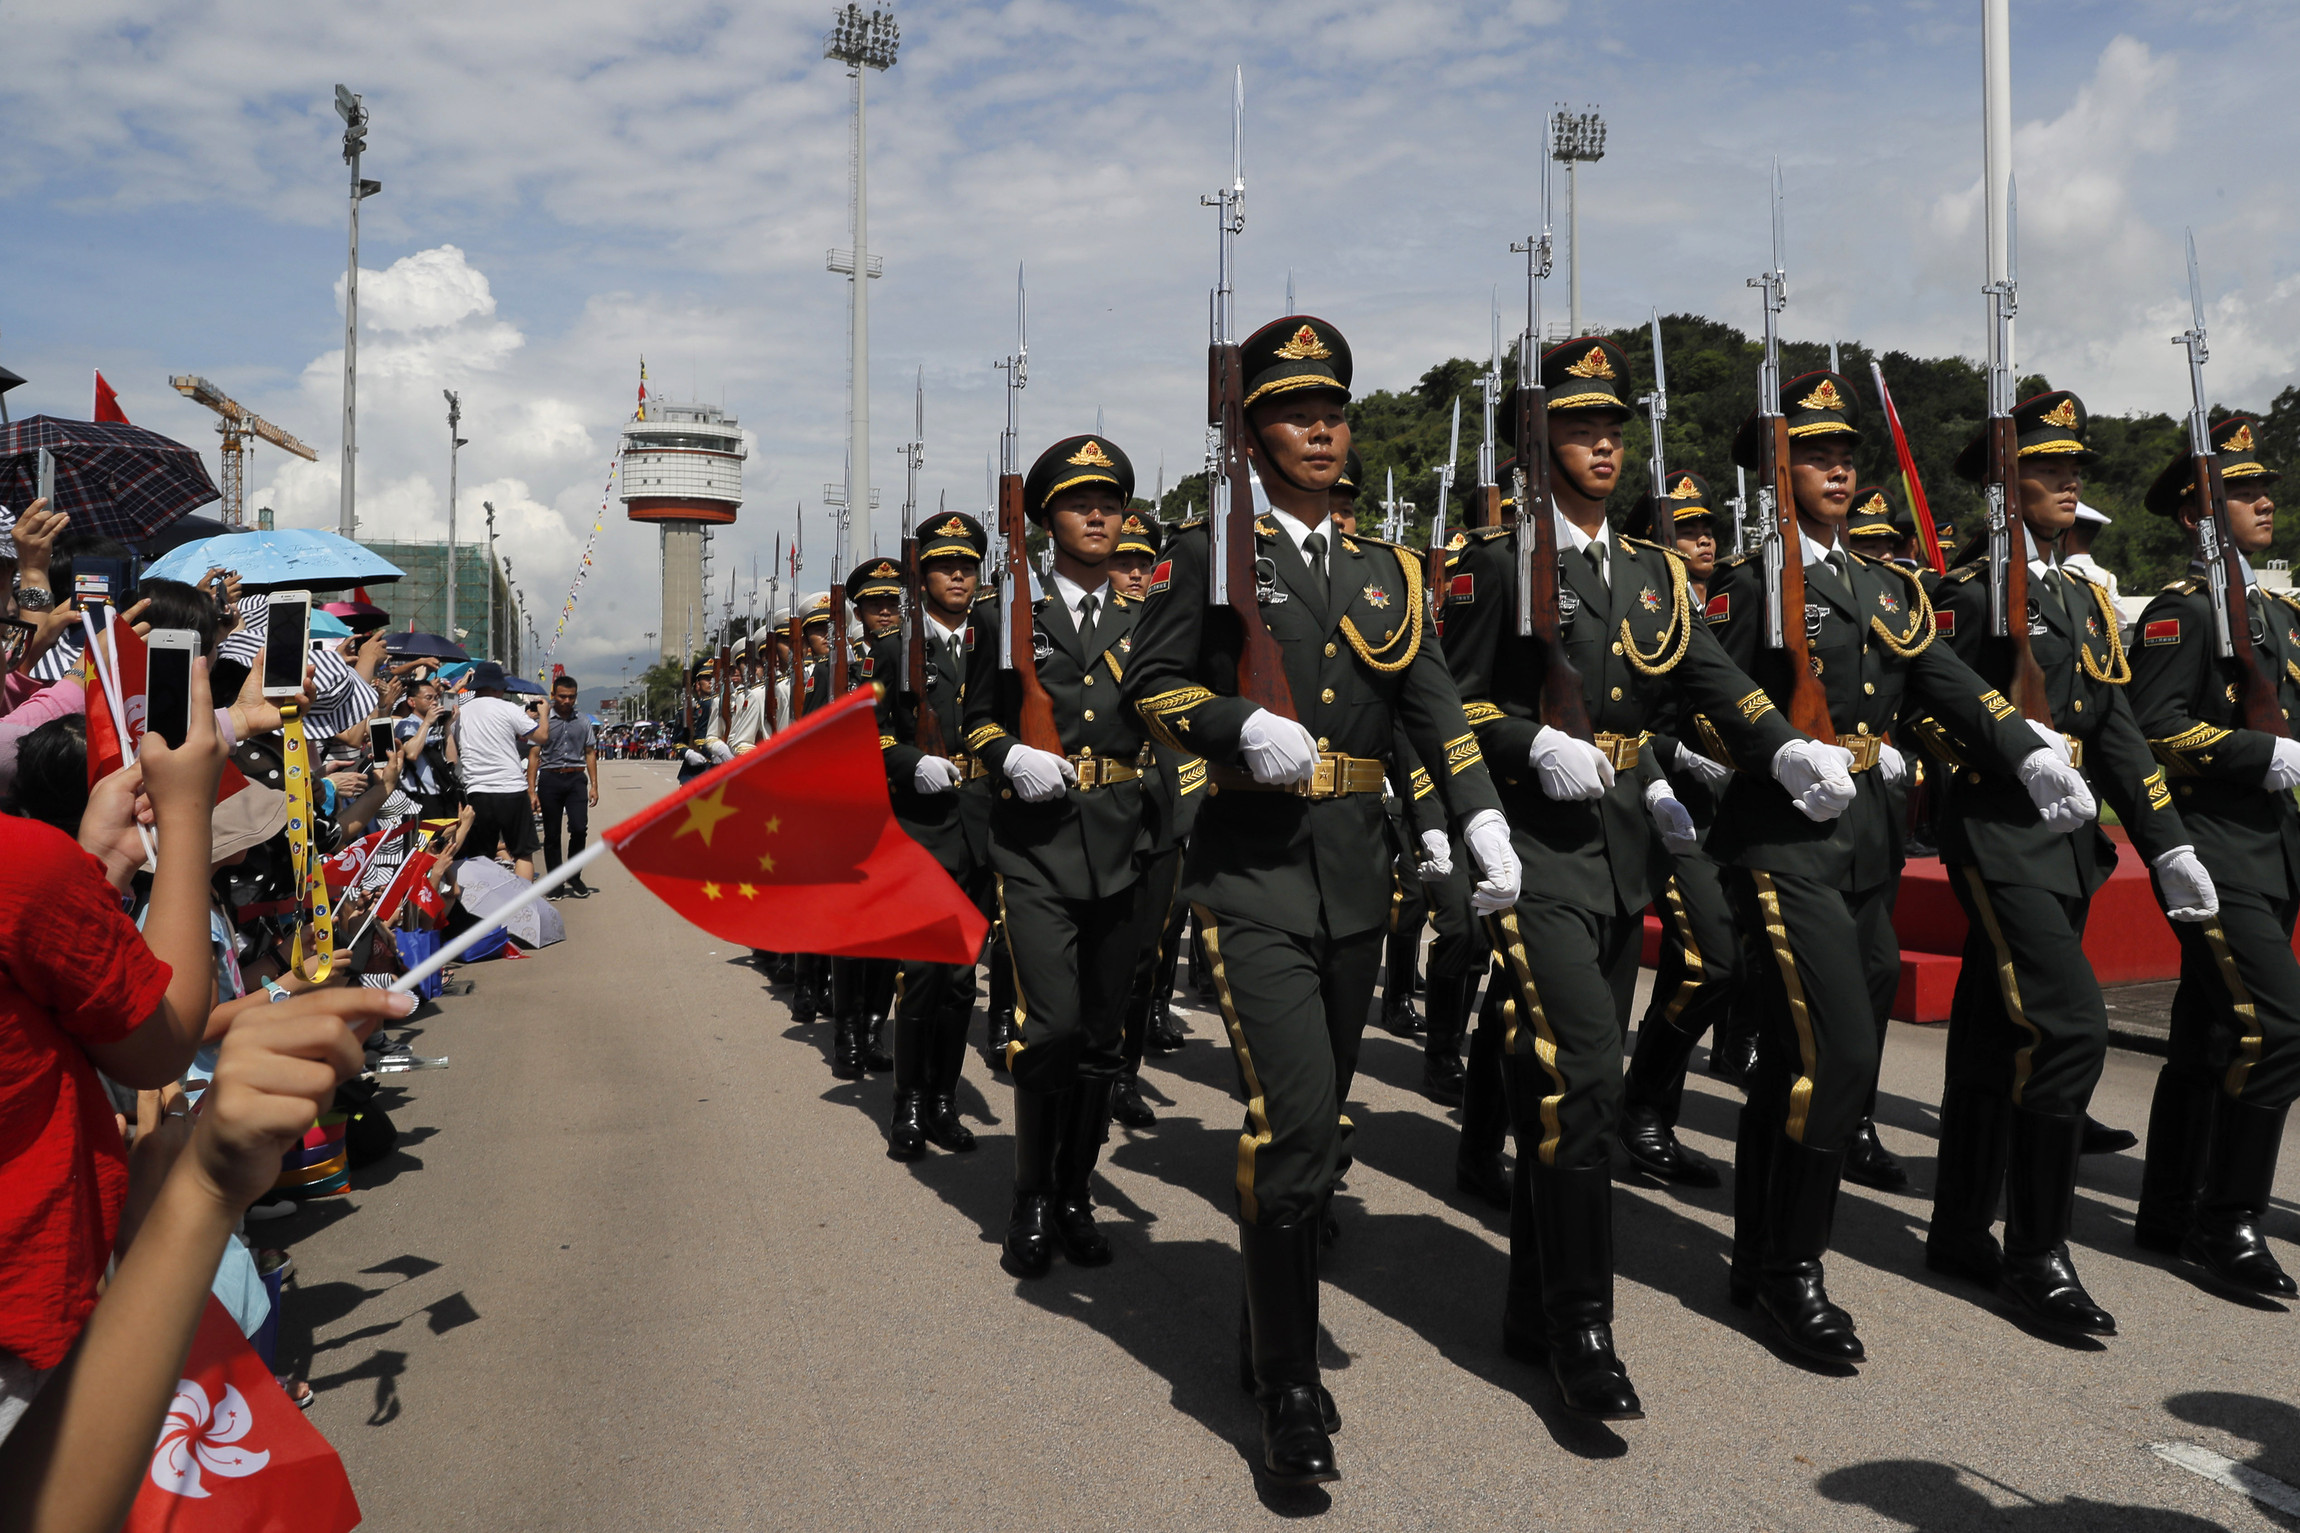 The Chinese Military Reforms and Transforms in the 'New Era'